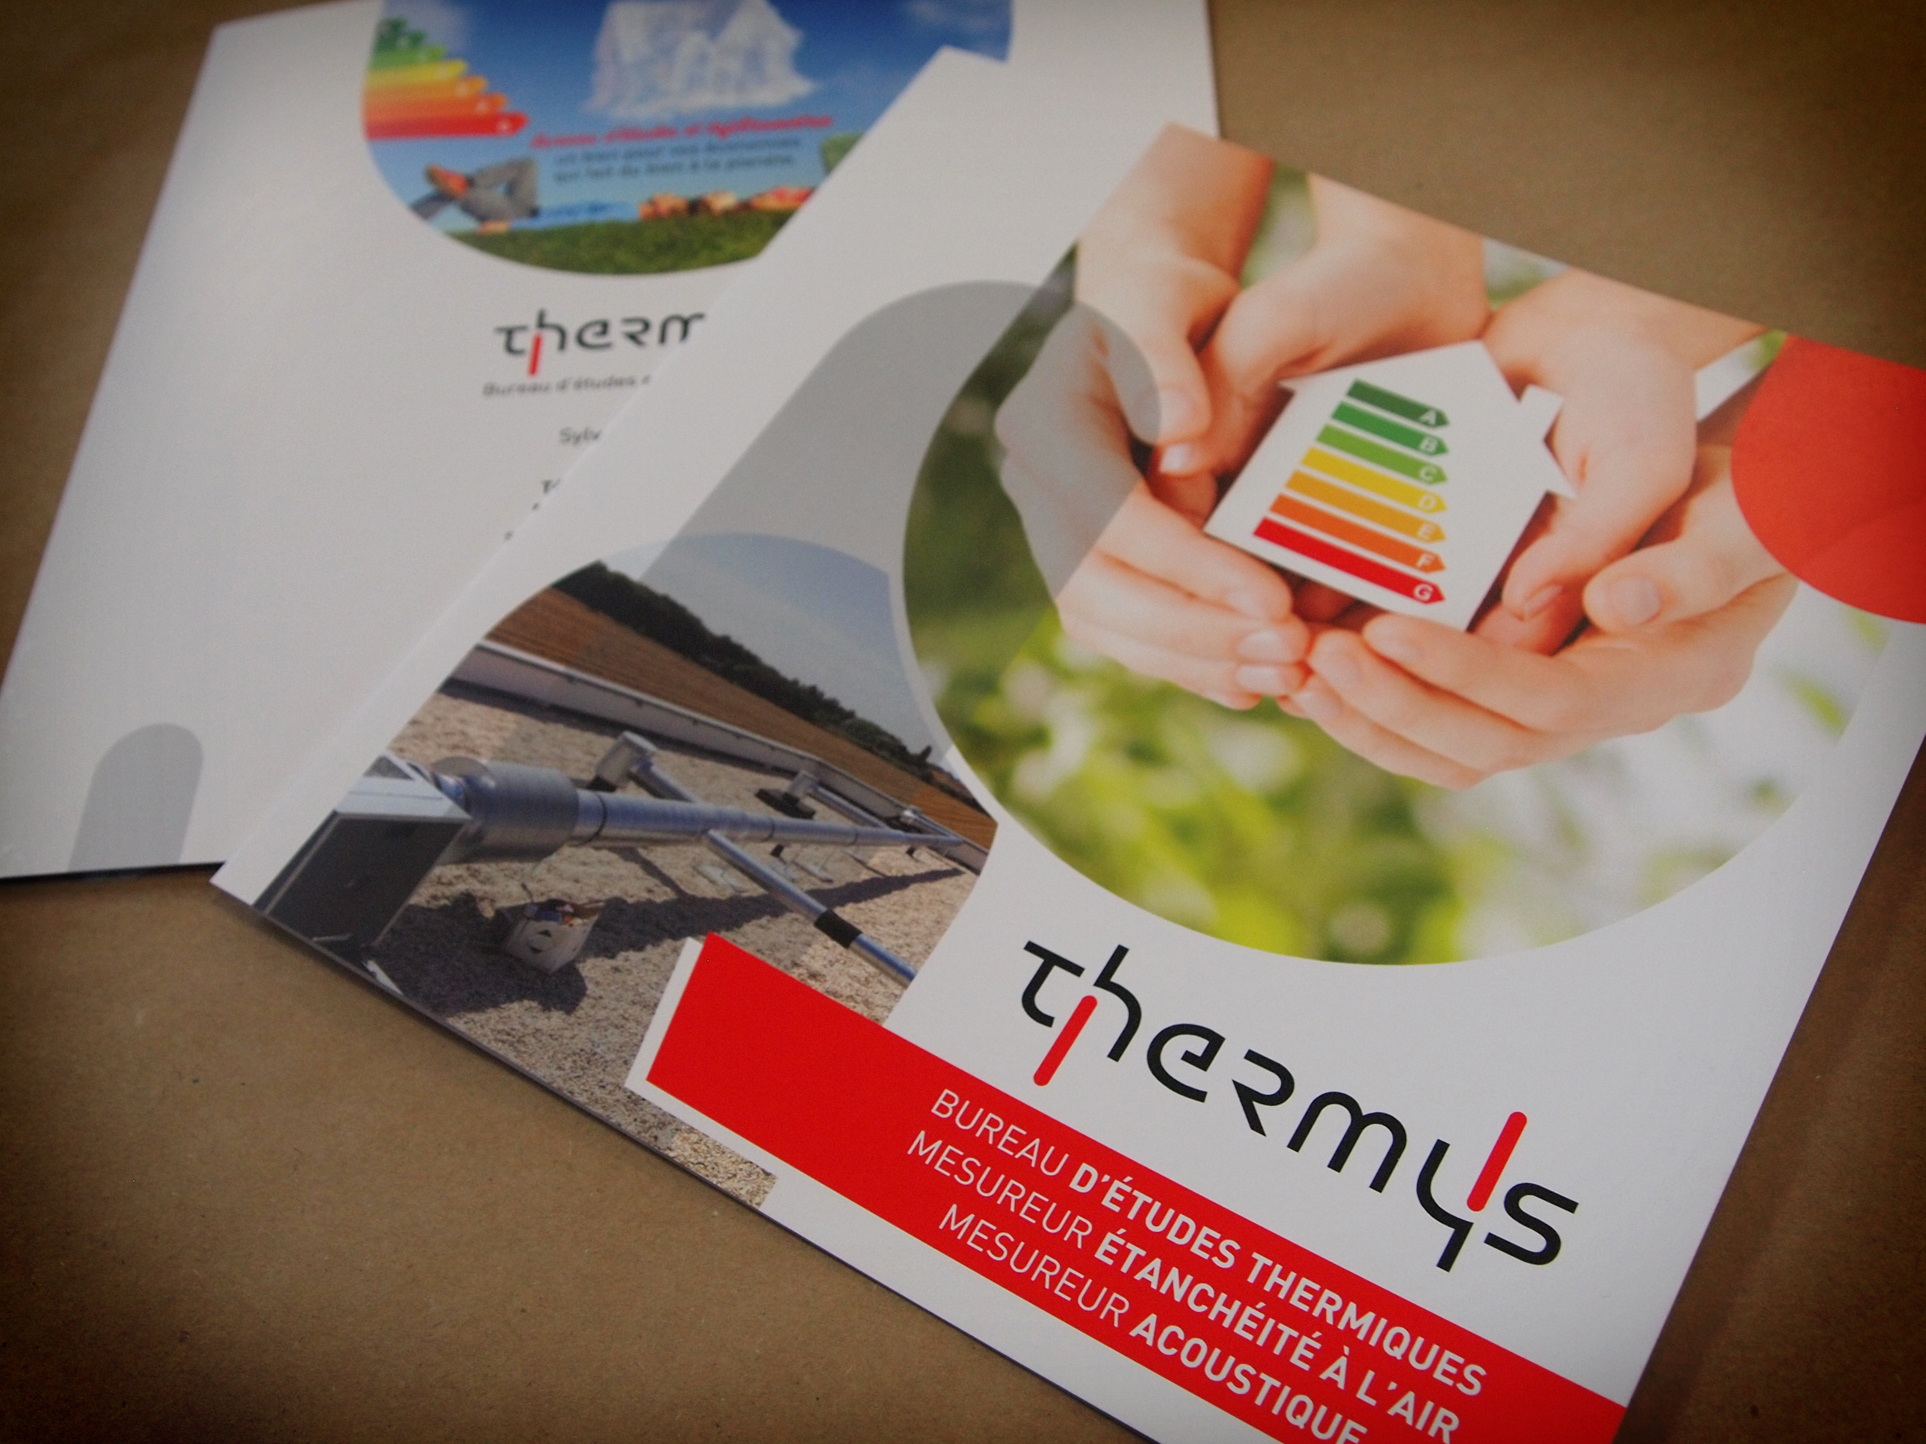 THERMYS_PLAQUETTE3.jpg